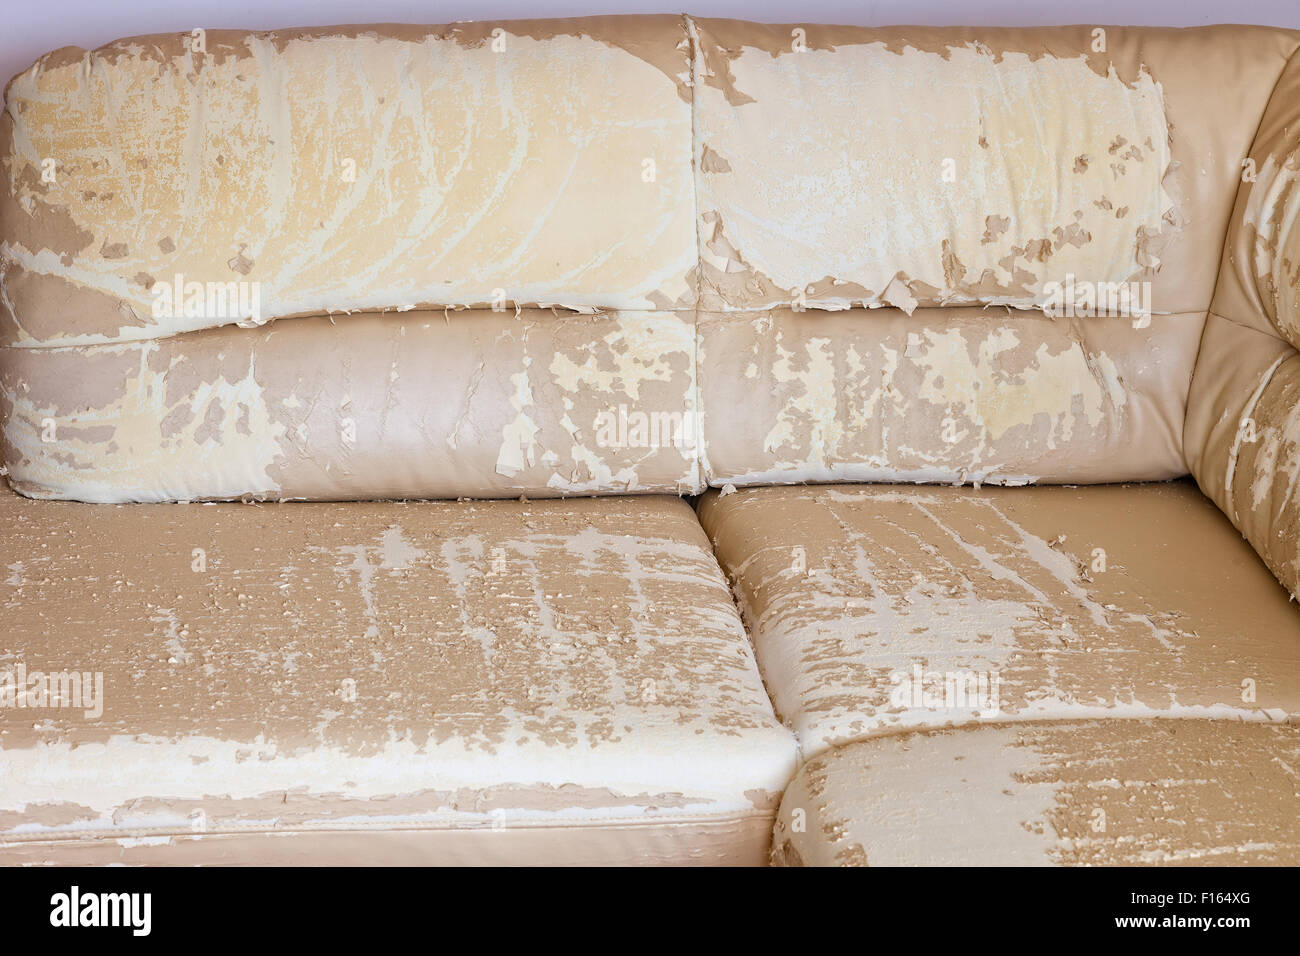 Beige damaged or cracked synthetic leather texture. - Stock Image